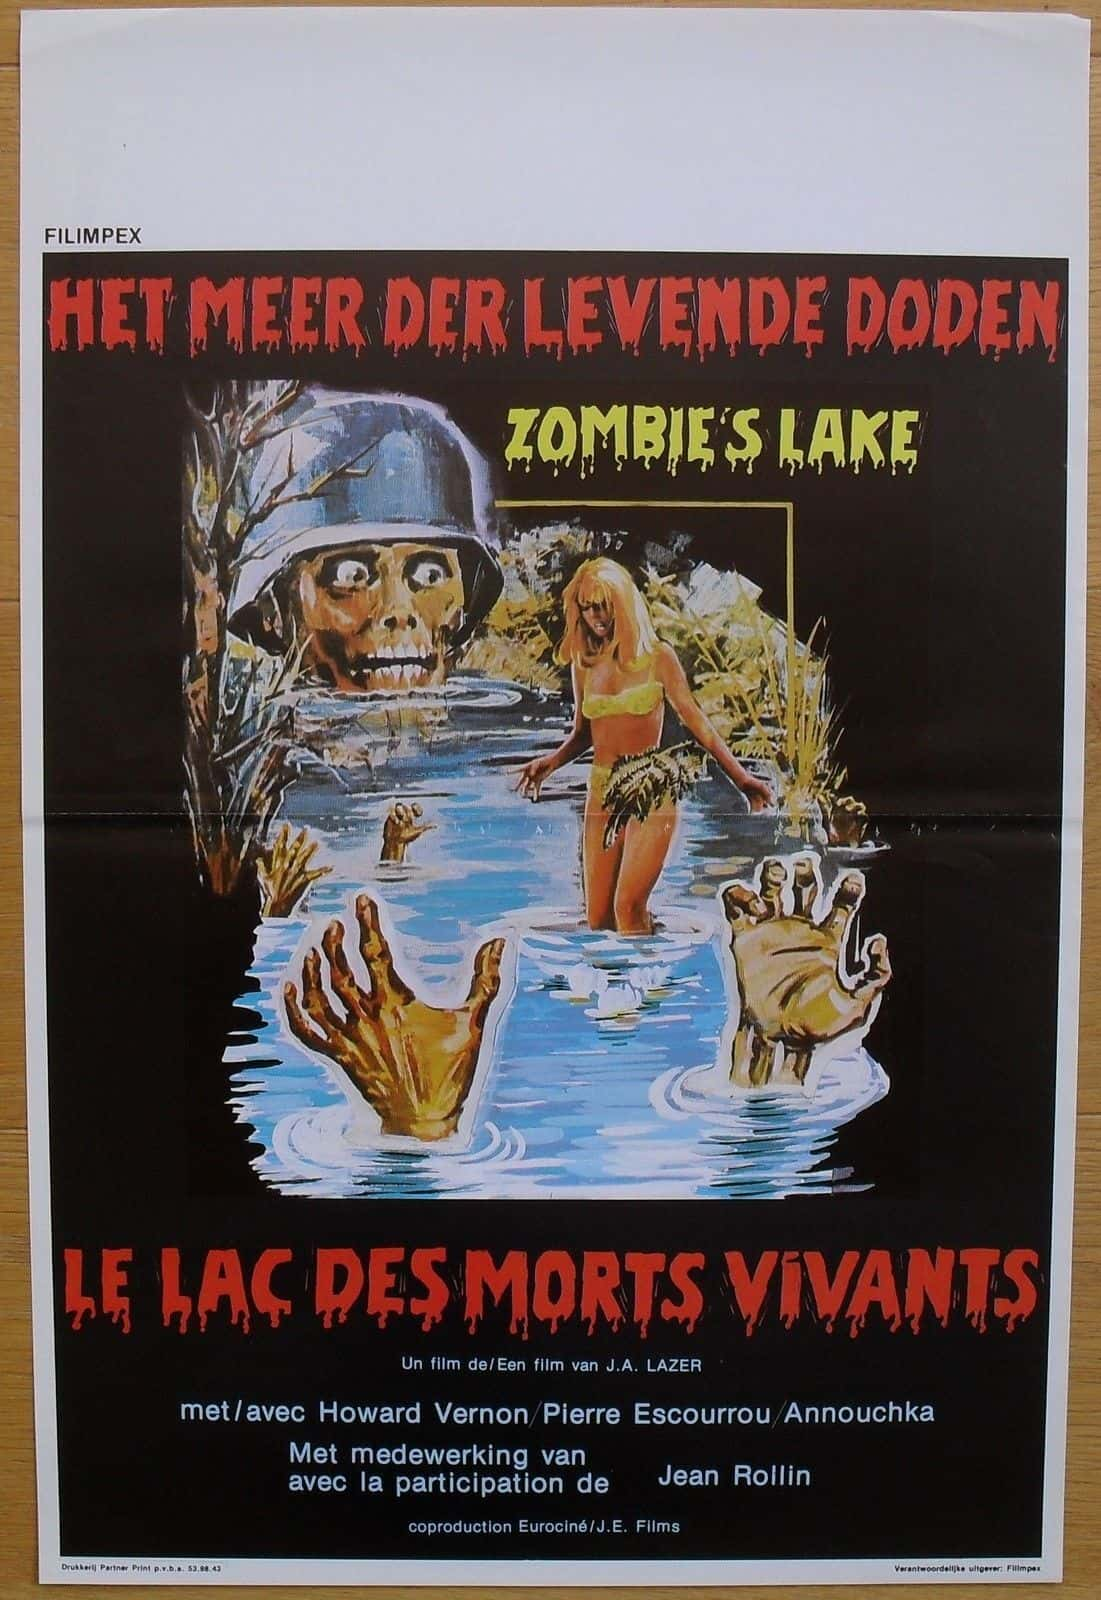 Movie Posters We Love: Zombie Lake (1981)